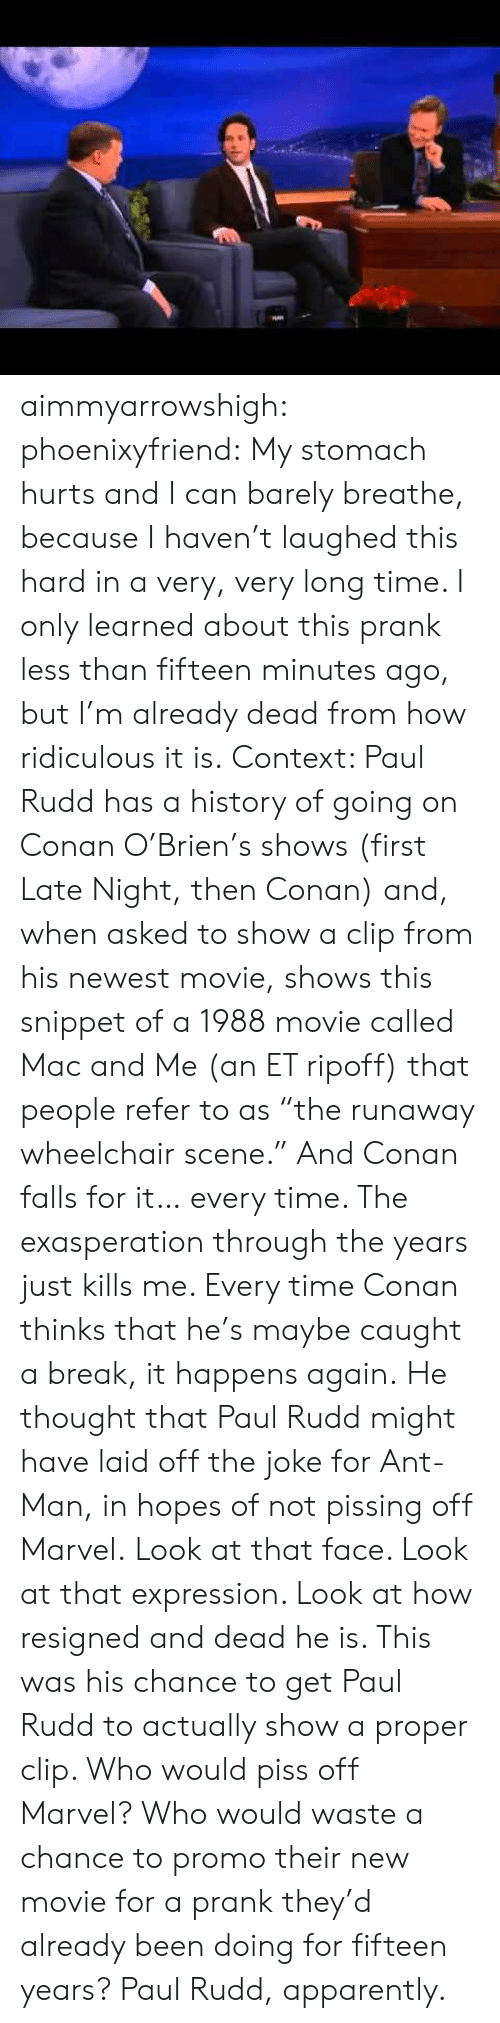 "conan: aimmyarrowshigh:  phoenixyfriend:  My stomach hurts and I can barely breathe, because I haven't laughed this hard in a very, very long time. I only learned about this prank less than fifteen minutes ago, but I'm already dead from how ridiculous it is. Context: Paul Rudd has a history of going on Conan O'Brien's shows (first Late Night, then Conan) and, when asked to show a clip from his newest movie, shows this snippet of a 1988 movie called Mac and Me (an ET ripoff) that people refer to as ""the runaway wheelchair scene."" And Conan falls for it… every time. The exasperation through the years just kills me. Every time Conan thinks that he's maybe caught a break, it happens again. He thought that Paul Rudd might have laid off the joke for Ant-Man, in hopes of not pissing off Marvel. Look at that face. Look at that expression. Look at how resigned and dead he is. This was his chance to get Paul Rudd to actually show a proper clip. Who would piss off Marvel? Who would waste a chance to promo their new movie for a prank they'd already been doing for fifteen years? Paul Rudd, apparently."